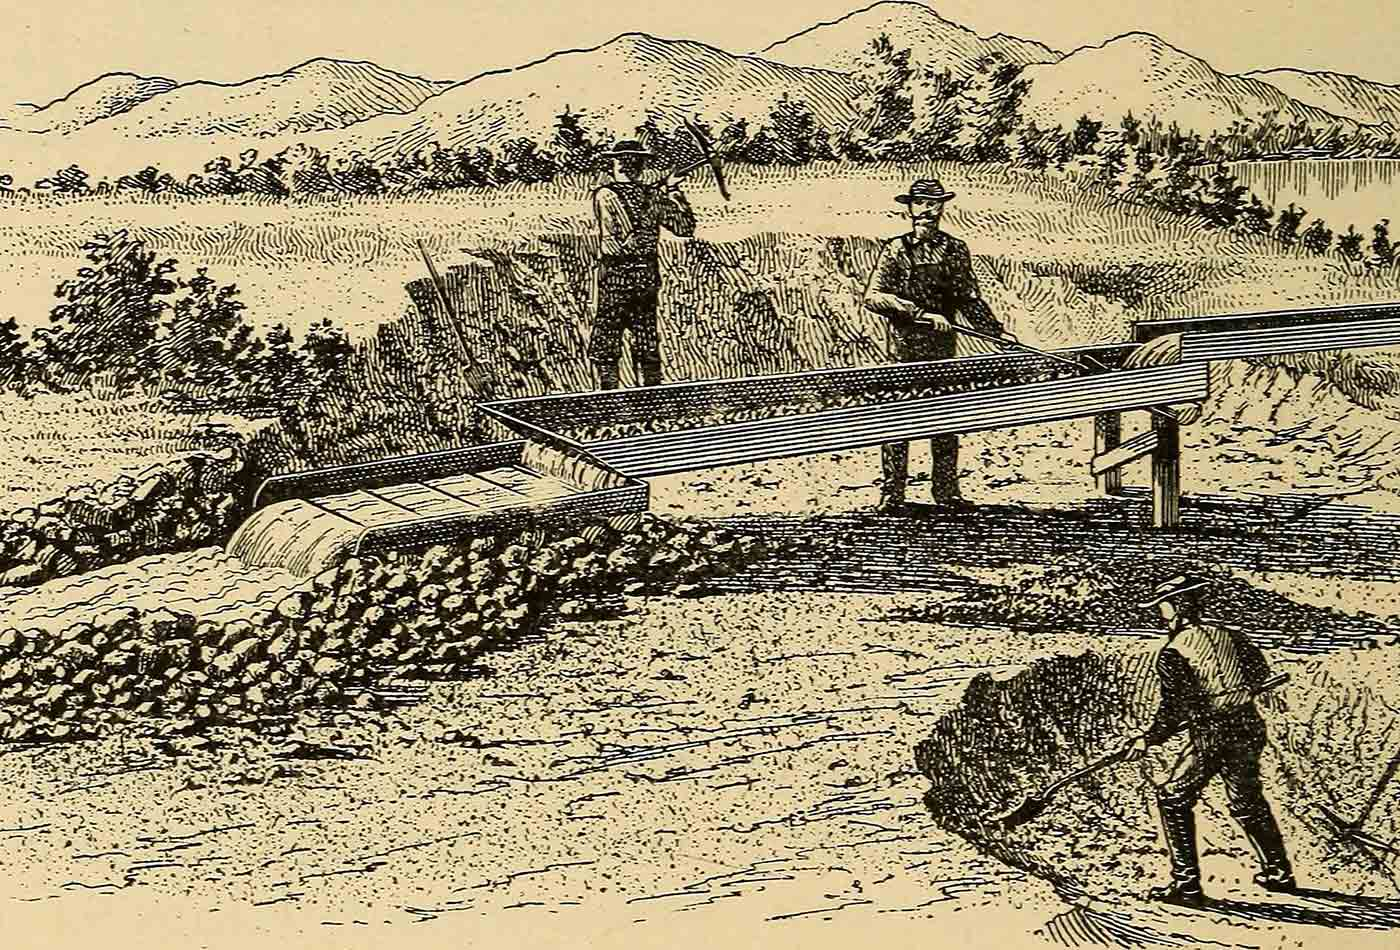 """Placer mining. A hand-book for Klondike and other miners and prospectors."""" (1897)"""